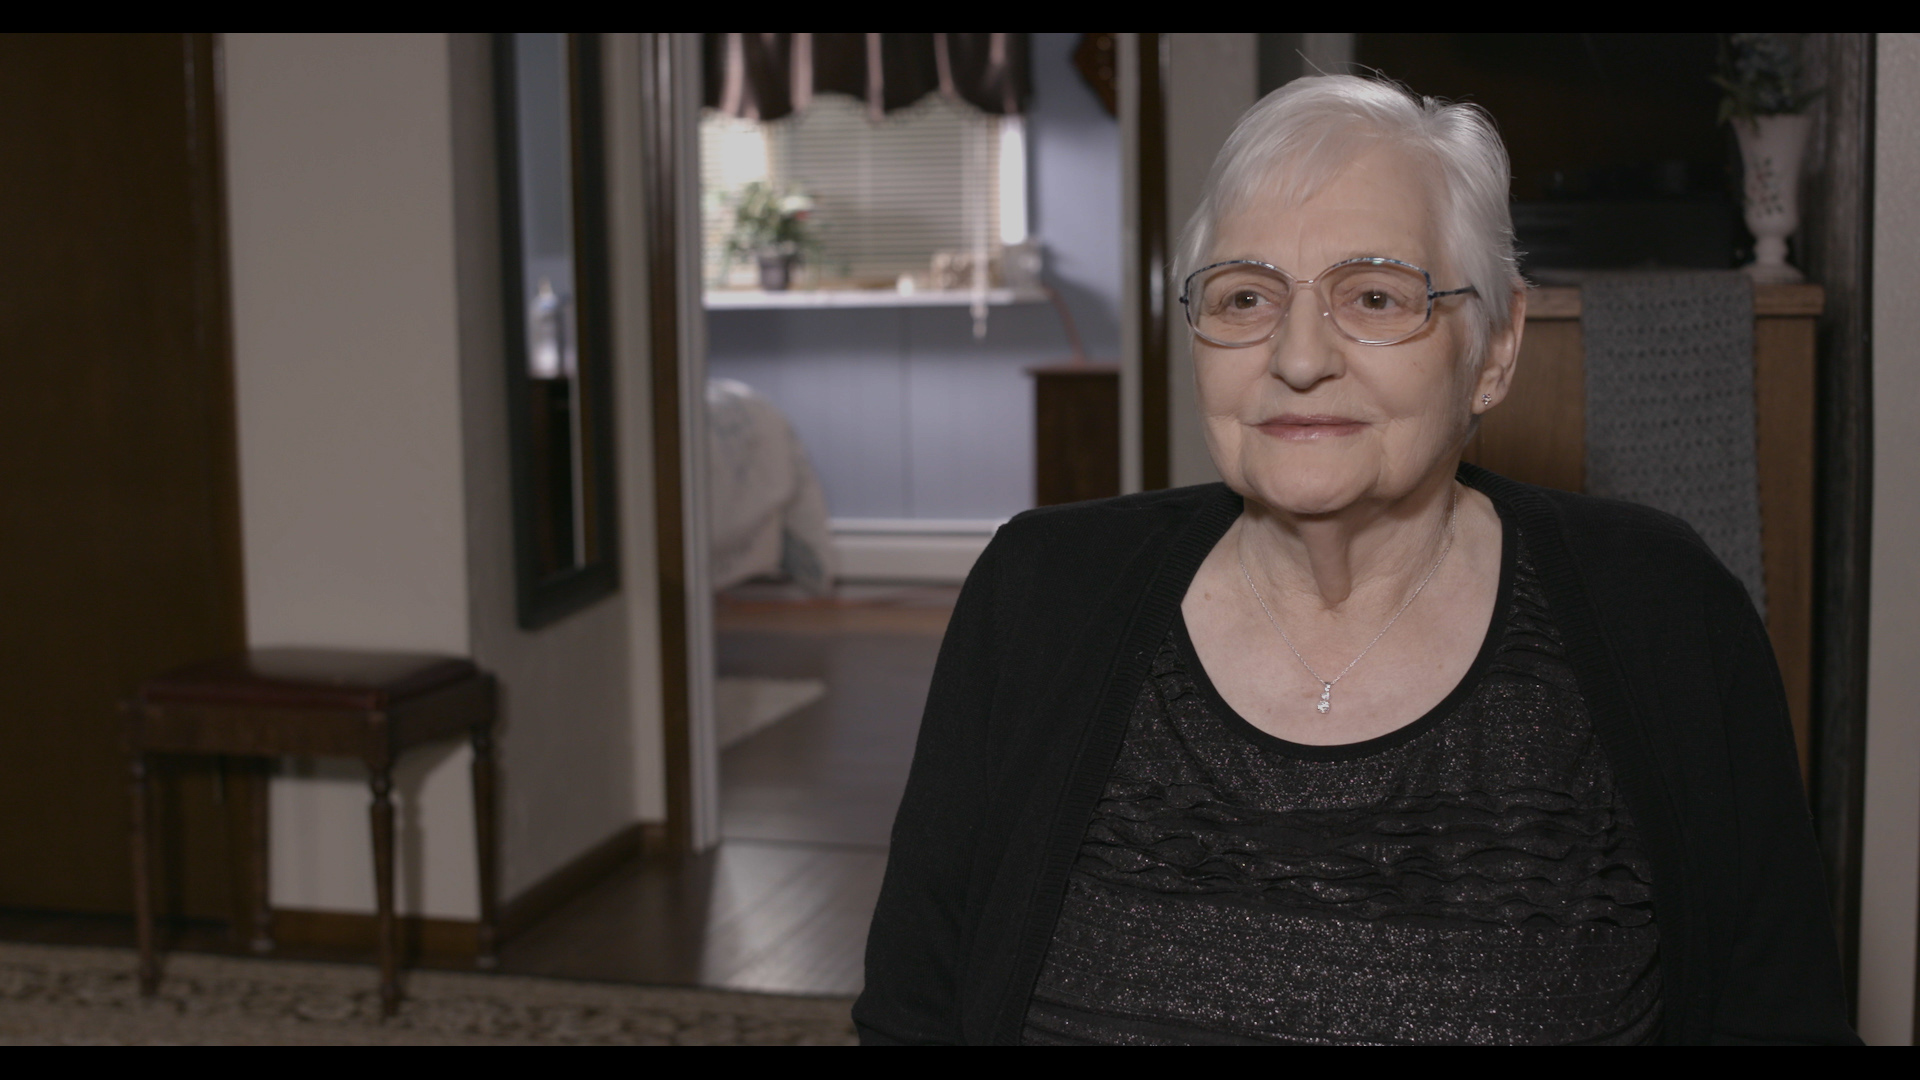 Mary enjoys visiting the Michigan lakes and lives with COPD